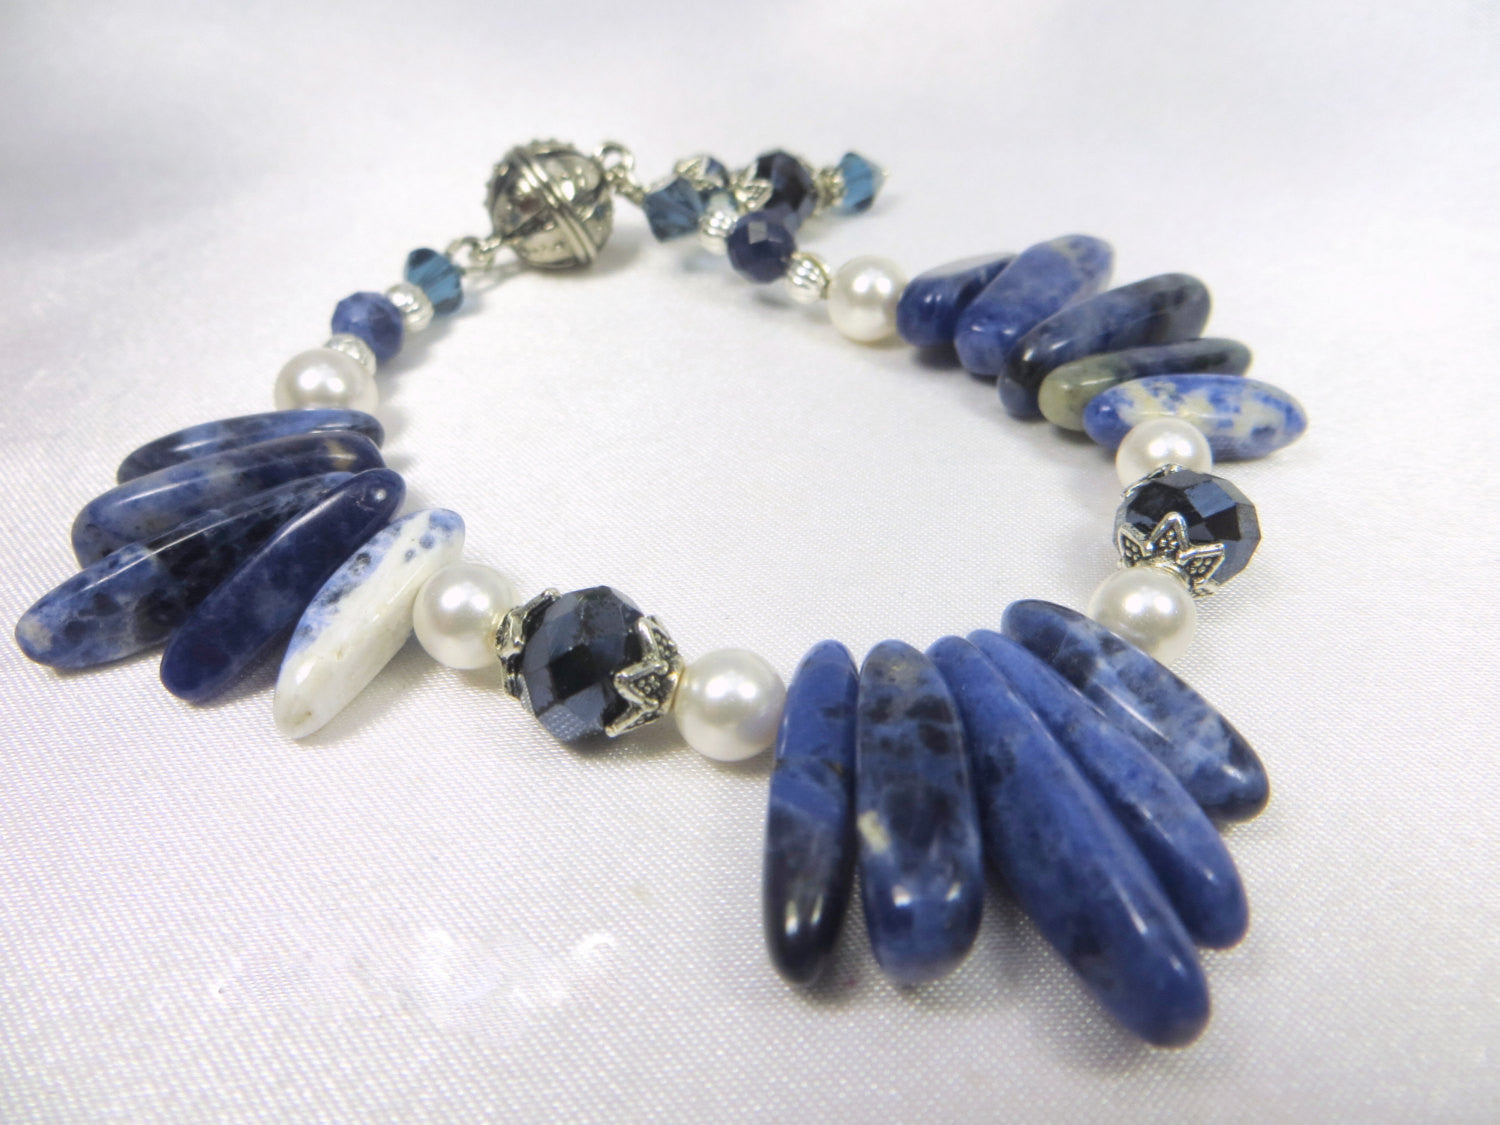 Blue Sodalite Bracelet in Daggers,Swarovski Crystals and White Pearls with Charms and magnetic clasp - Odyssey Creations